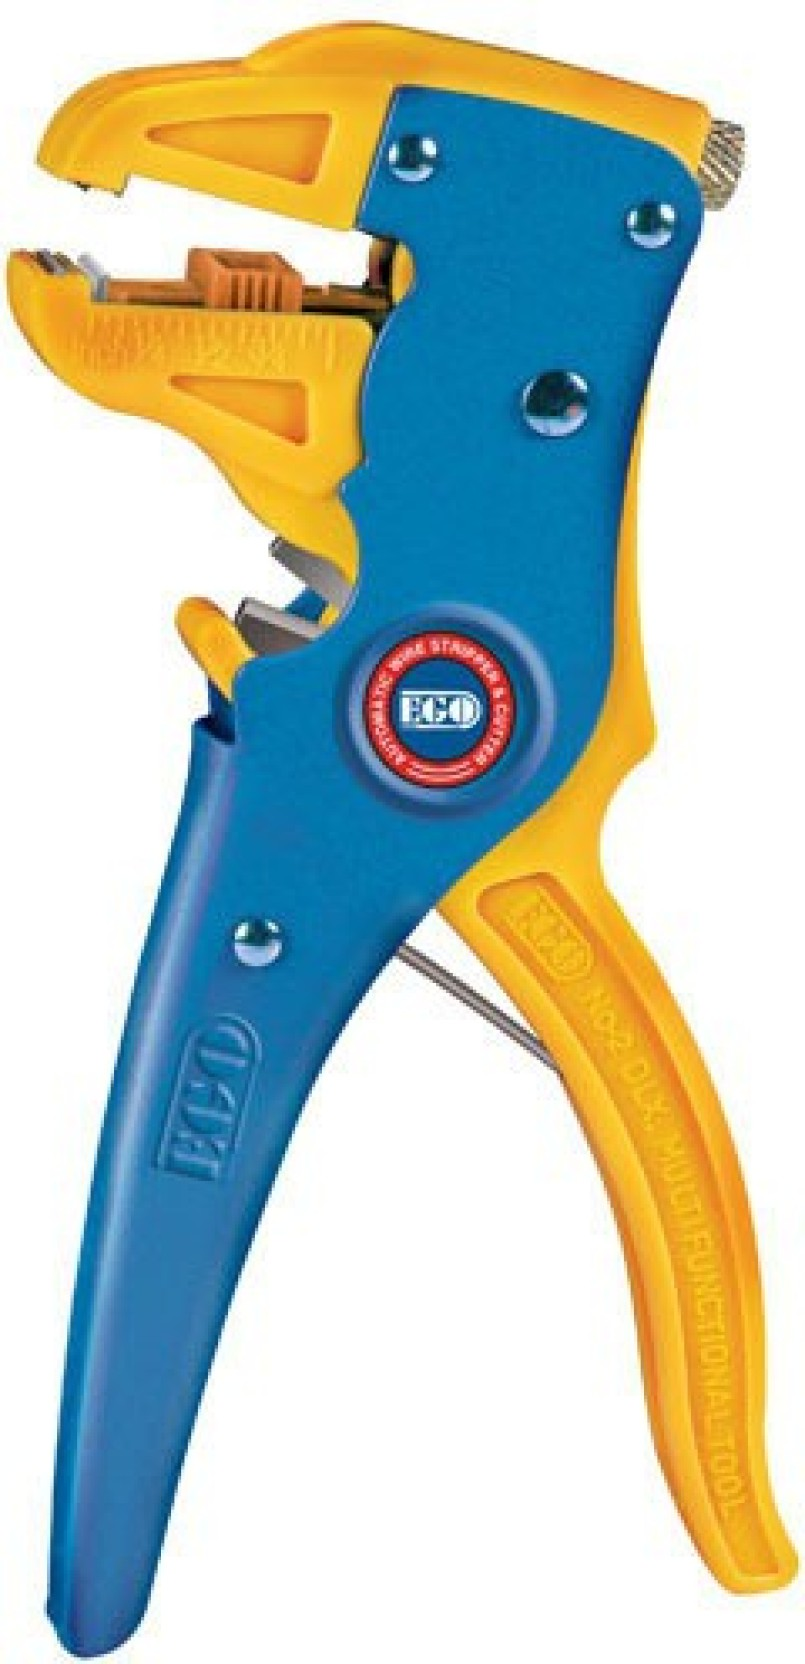 Ego No 2 Dlx Self Adjusting Stripper Wire Cutter Price In India Auto Crimper Plier Crimping Electricians Ratchet Action Add To Cart